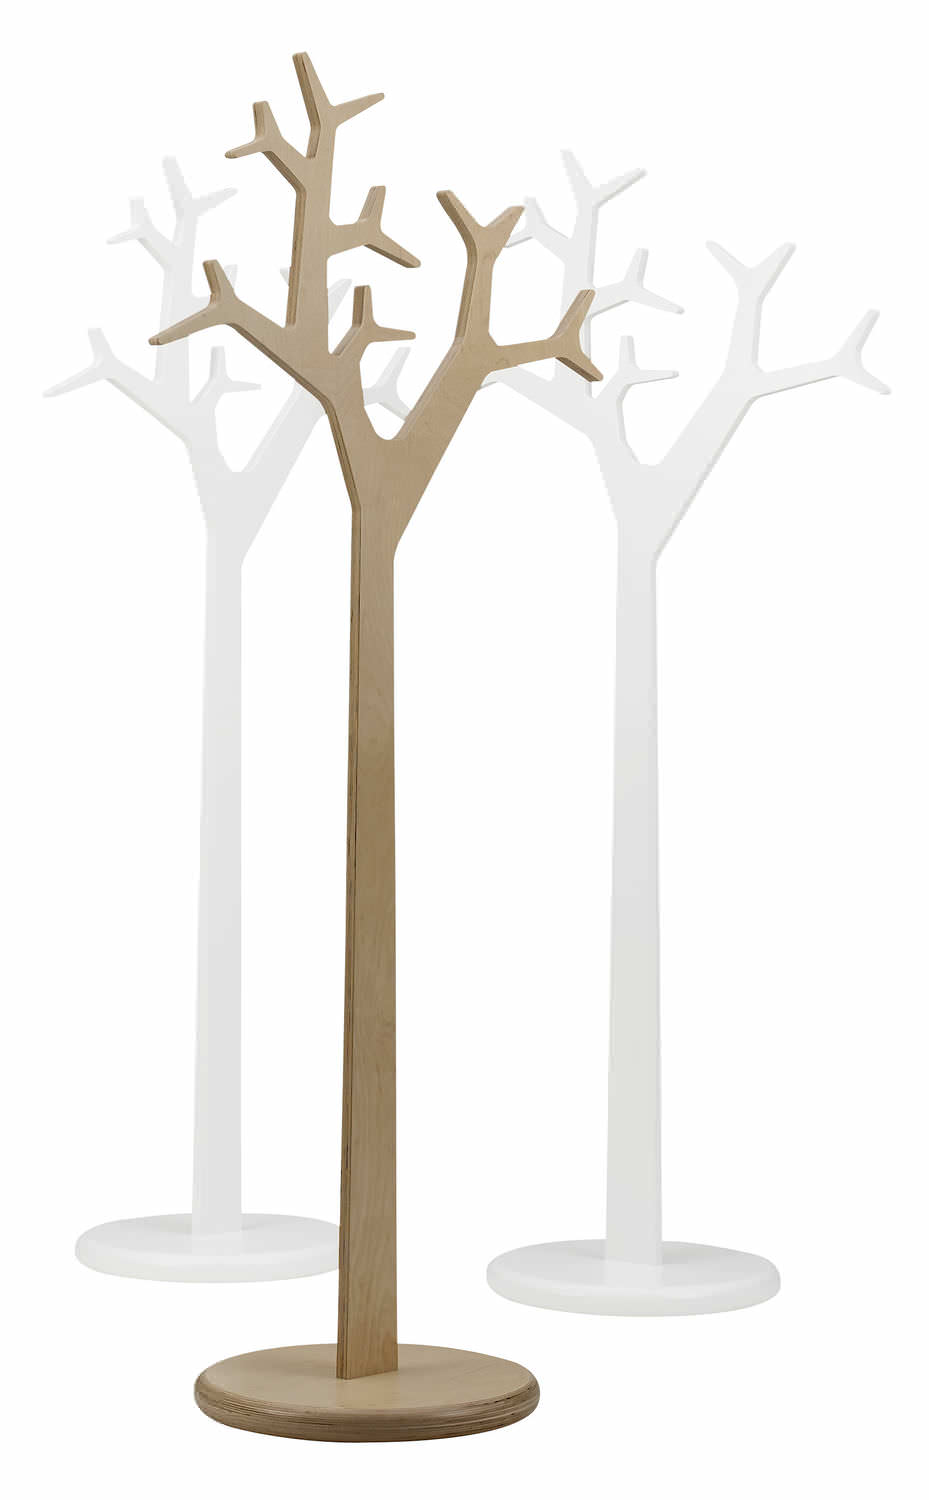 wallmounted coat rack  floor  contemporary  steel  tree by  -  wallmounted coat rack  floor  contemporary  steel tree by katrinolina swedese